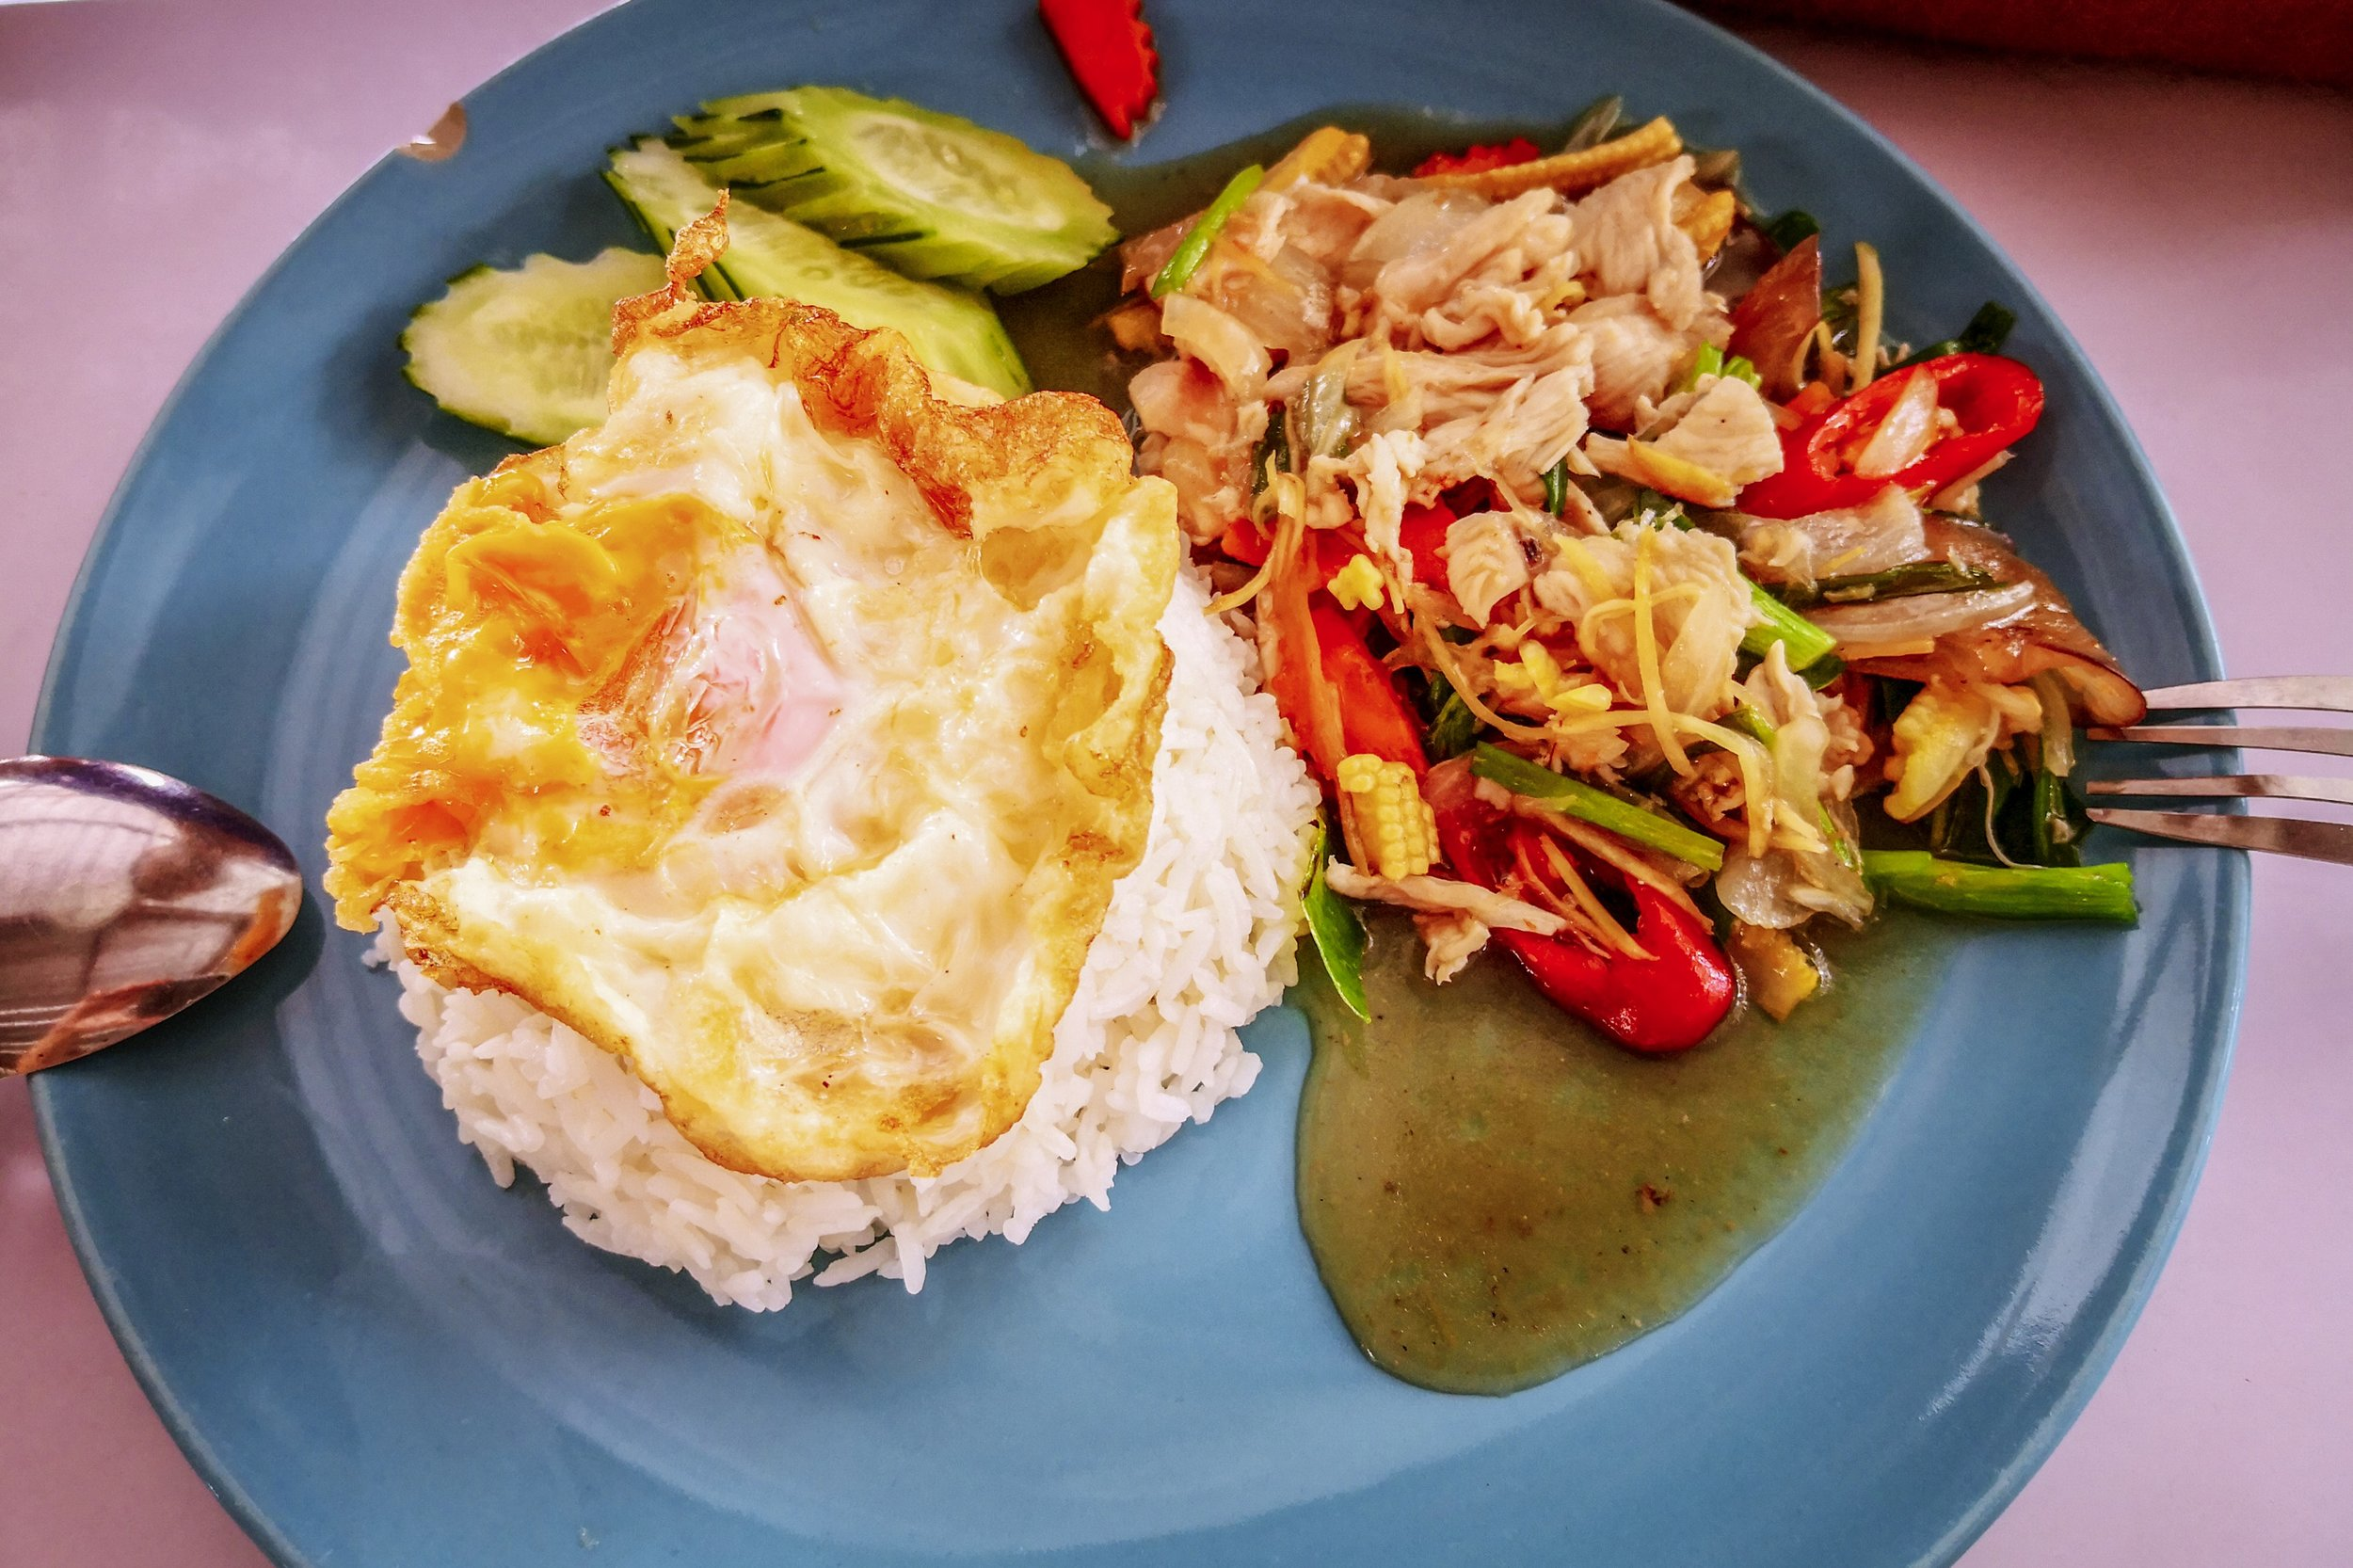 Stir-fried chicken with ginger and vegetables, rice with egg on top